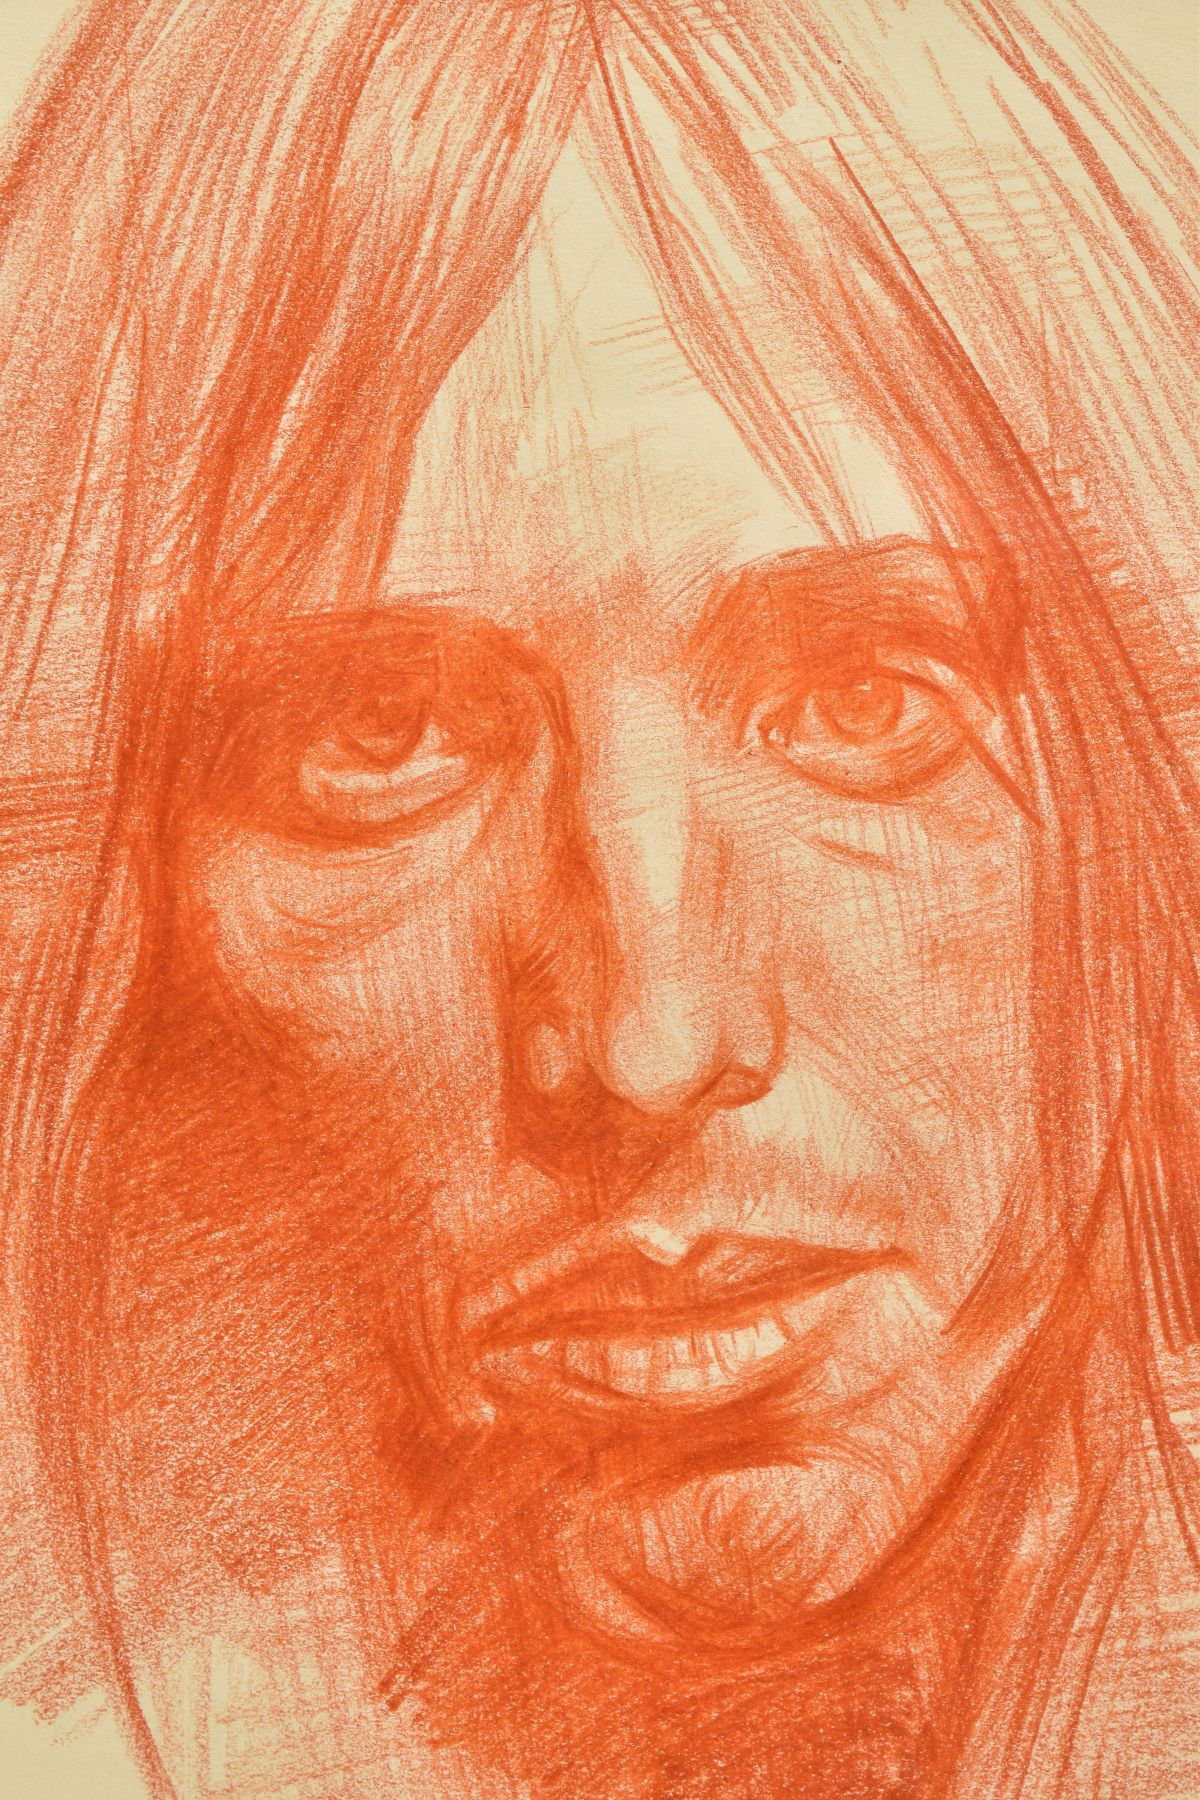 ZINSKY (BRITISH CONTEMPORARY) 'TOM PETTY' a portrait of the American rock star, signed and titled to - Image 3 of 4